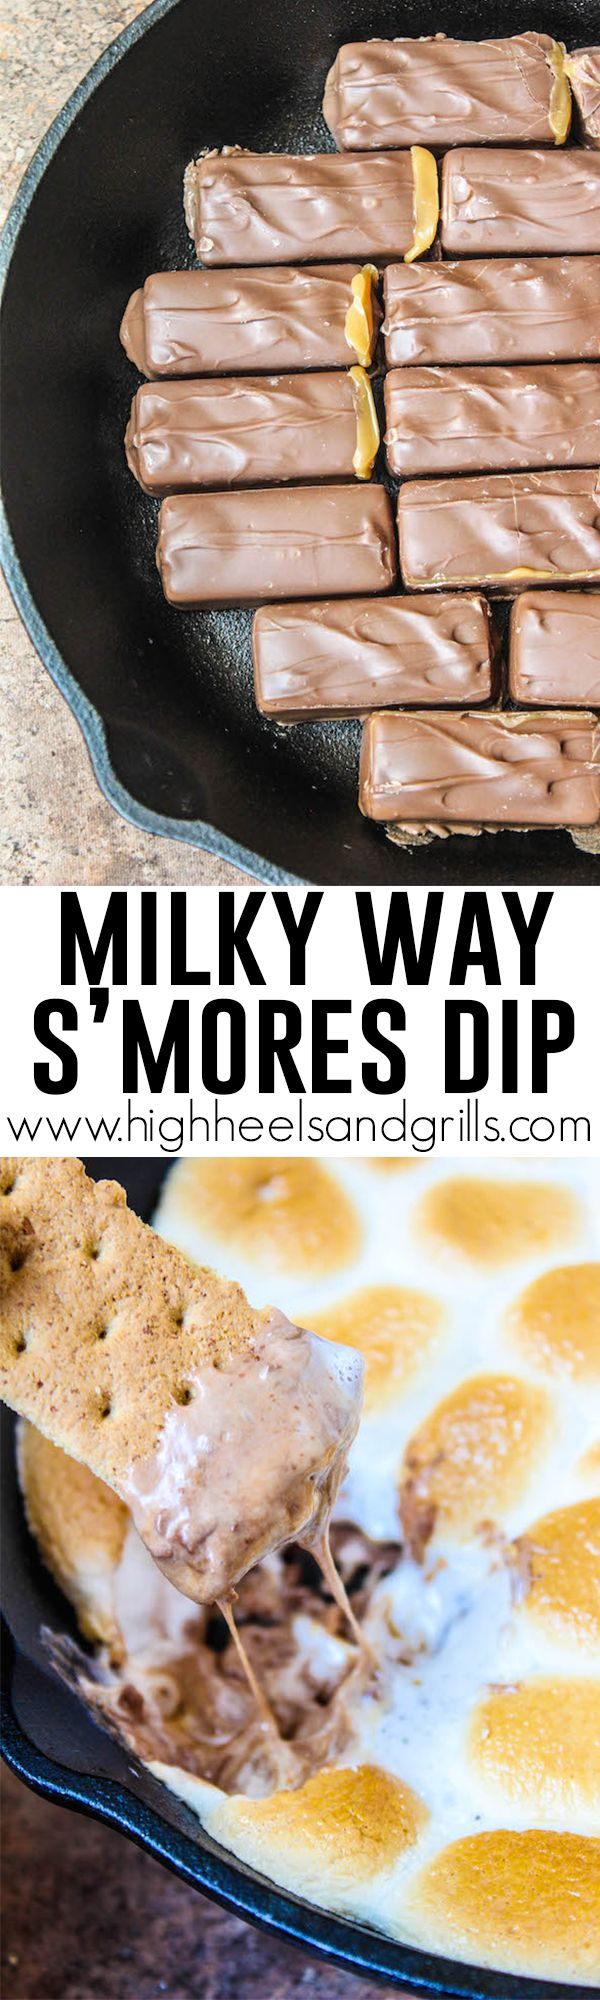 Milky Way S'mores Dip - If you've never eaten s'mores dip, you have to start with this one! Only 2 ingredients required and tastes delicious!